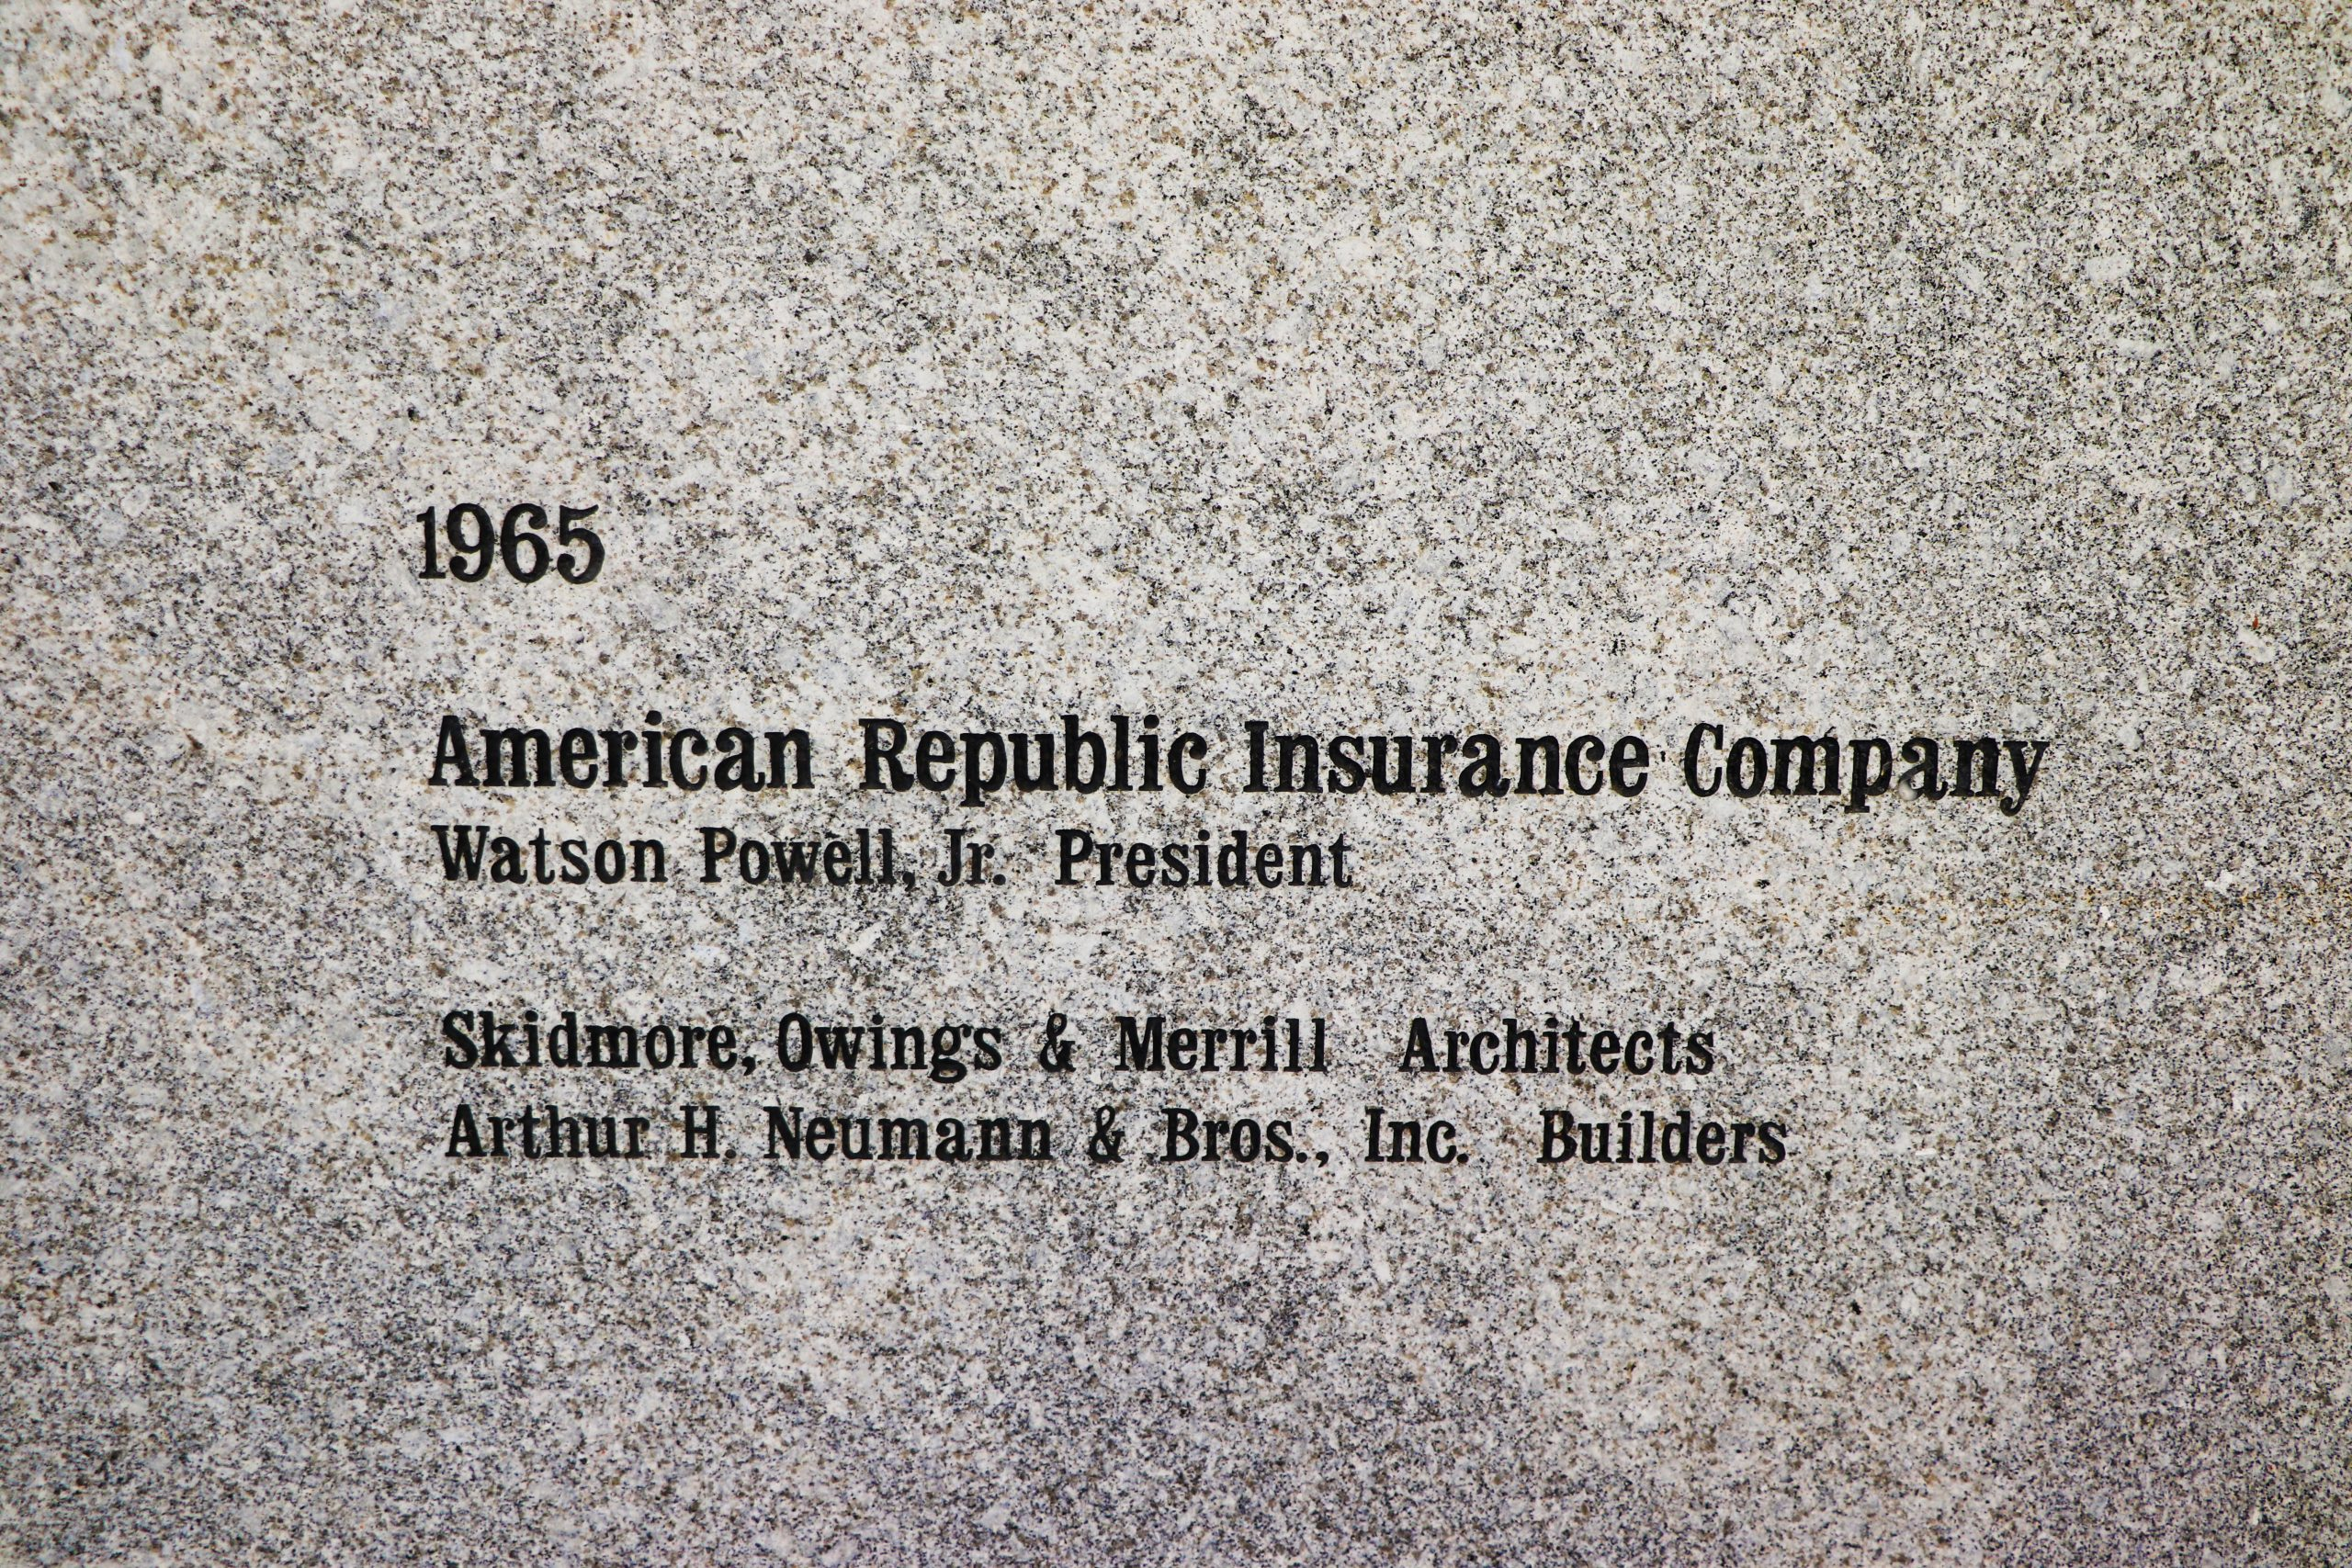 Plaque describing the sphere and naming the architect (Skidmore, Owings & Merrill) and Neumann Brothers